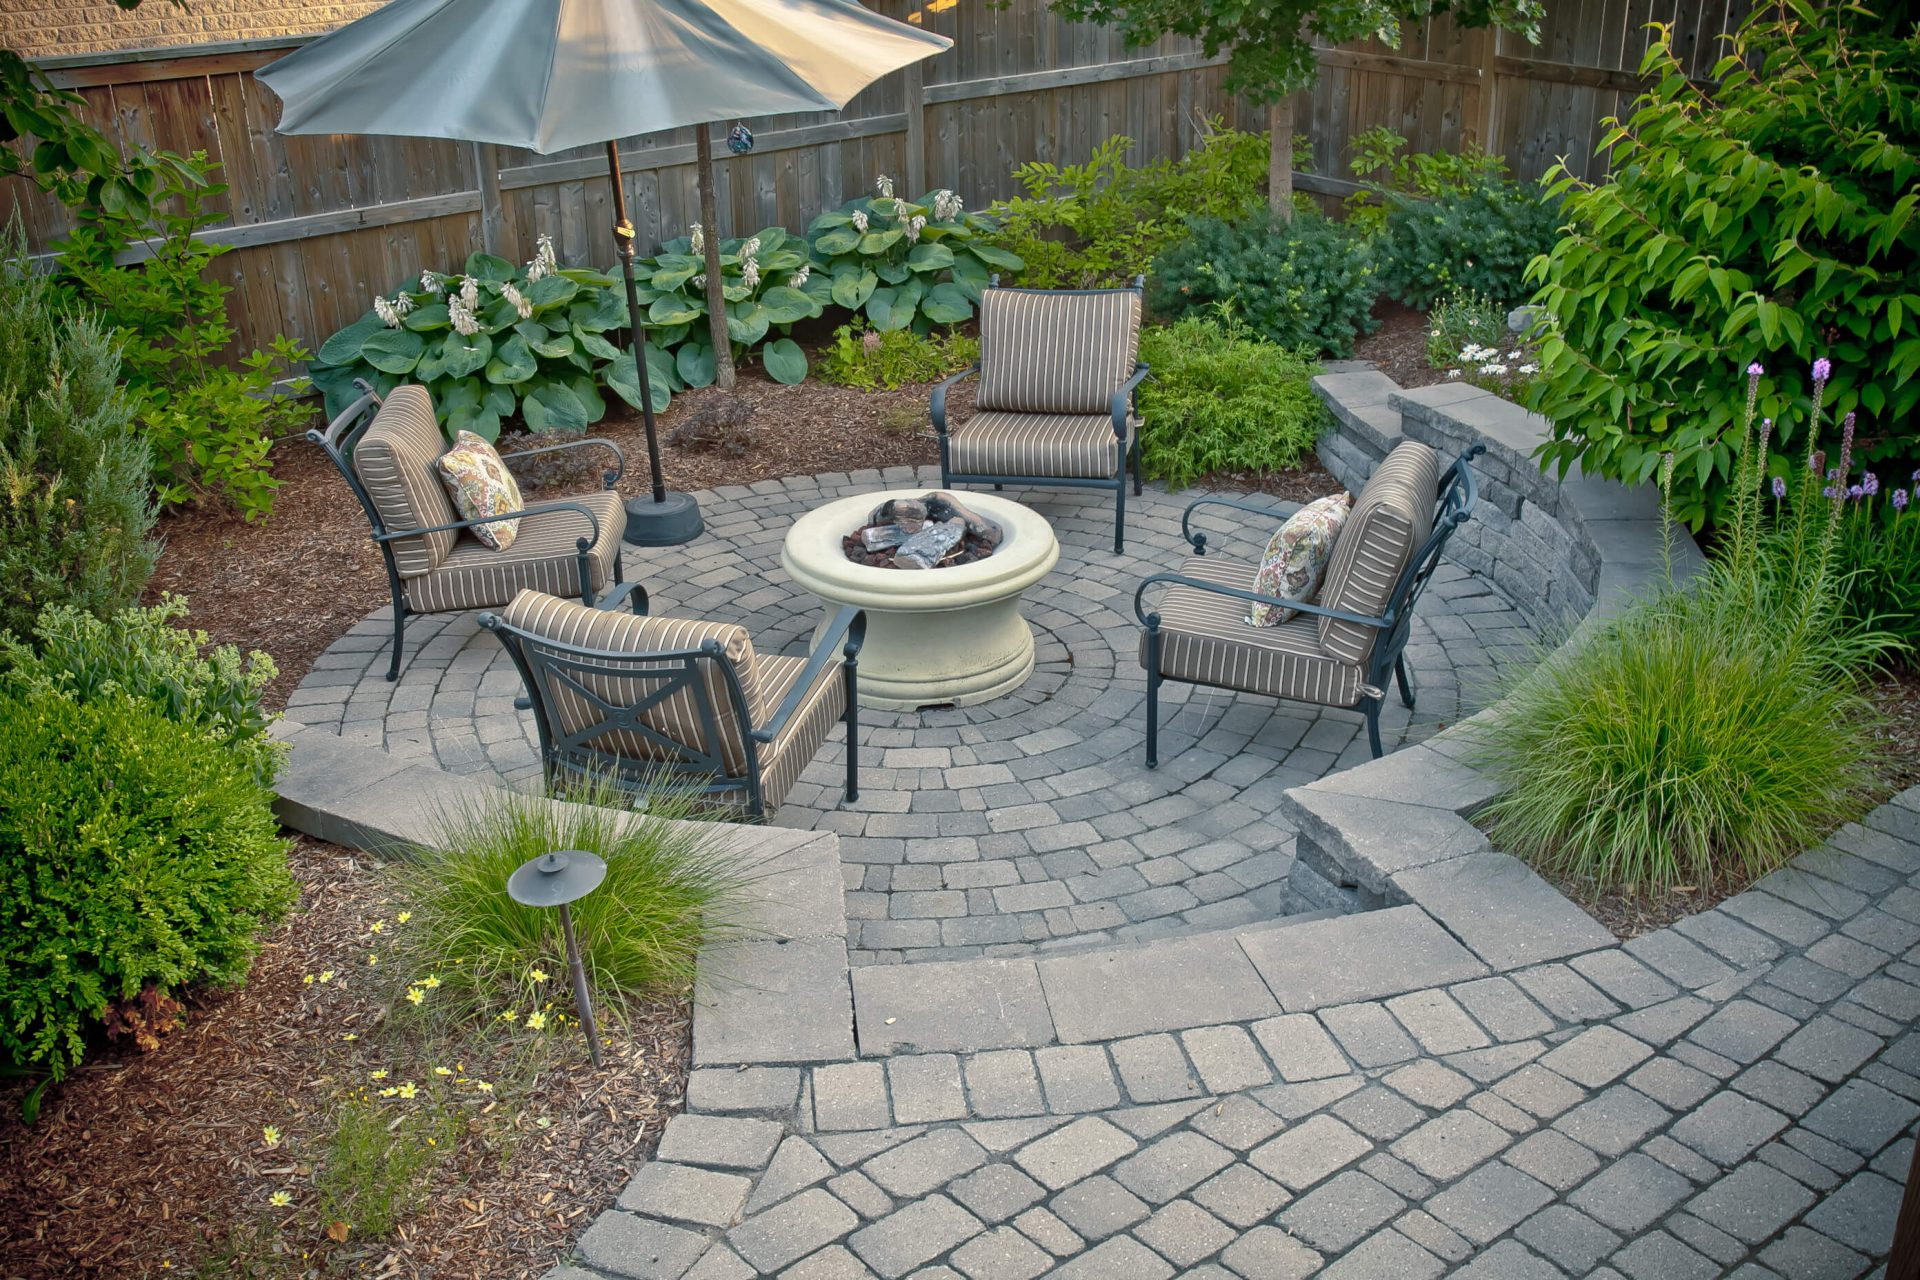 Lounge and fire pit area on cobble stoned path surrounded by garden